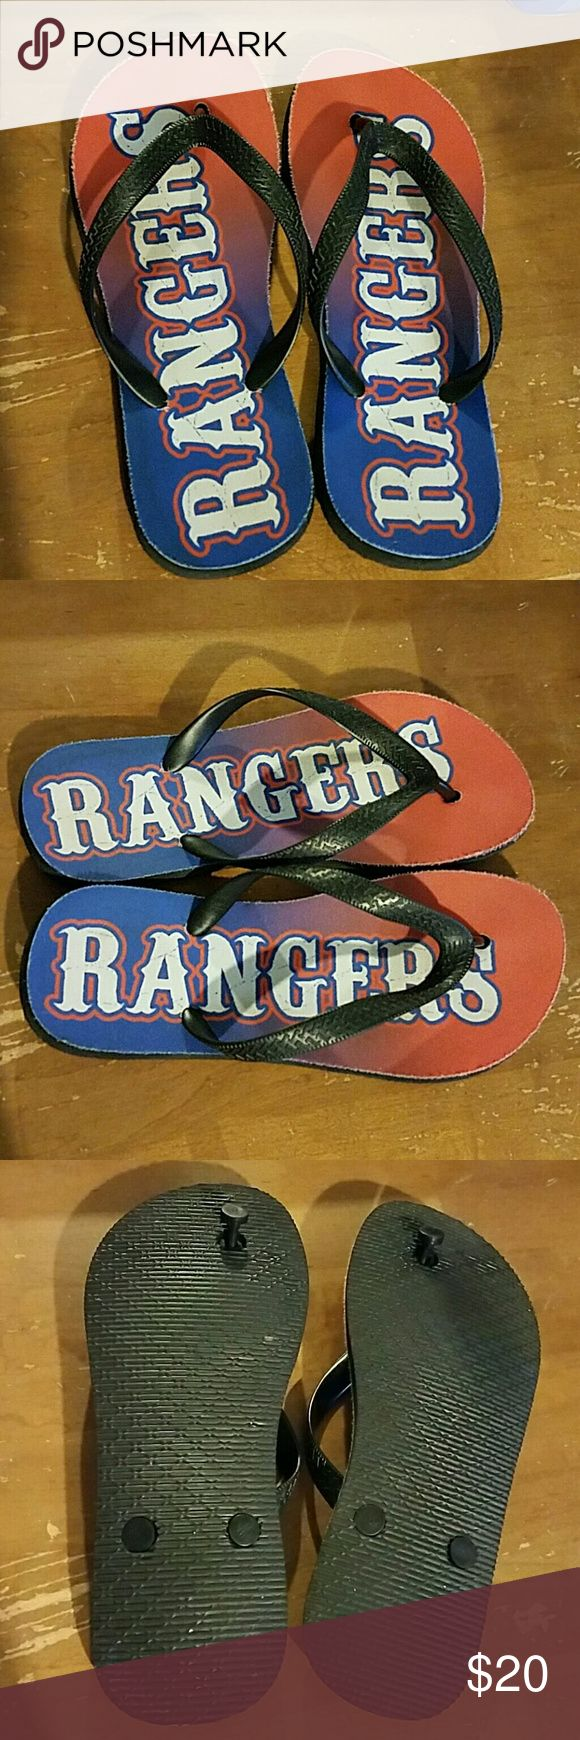 "Texas Rangers Flip Flops Texas Rangers Flip Flops, Red, Blue and white. Distressed look. Cloth on top. Size ""Medium"" best fits any size from 8 to 10. Shoes Sandals"